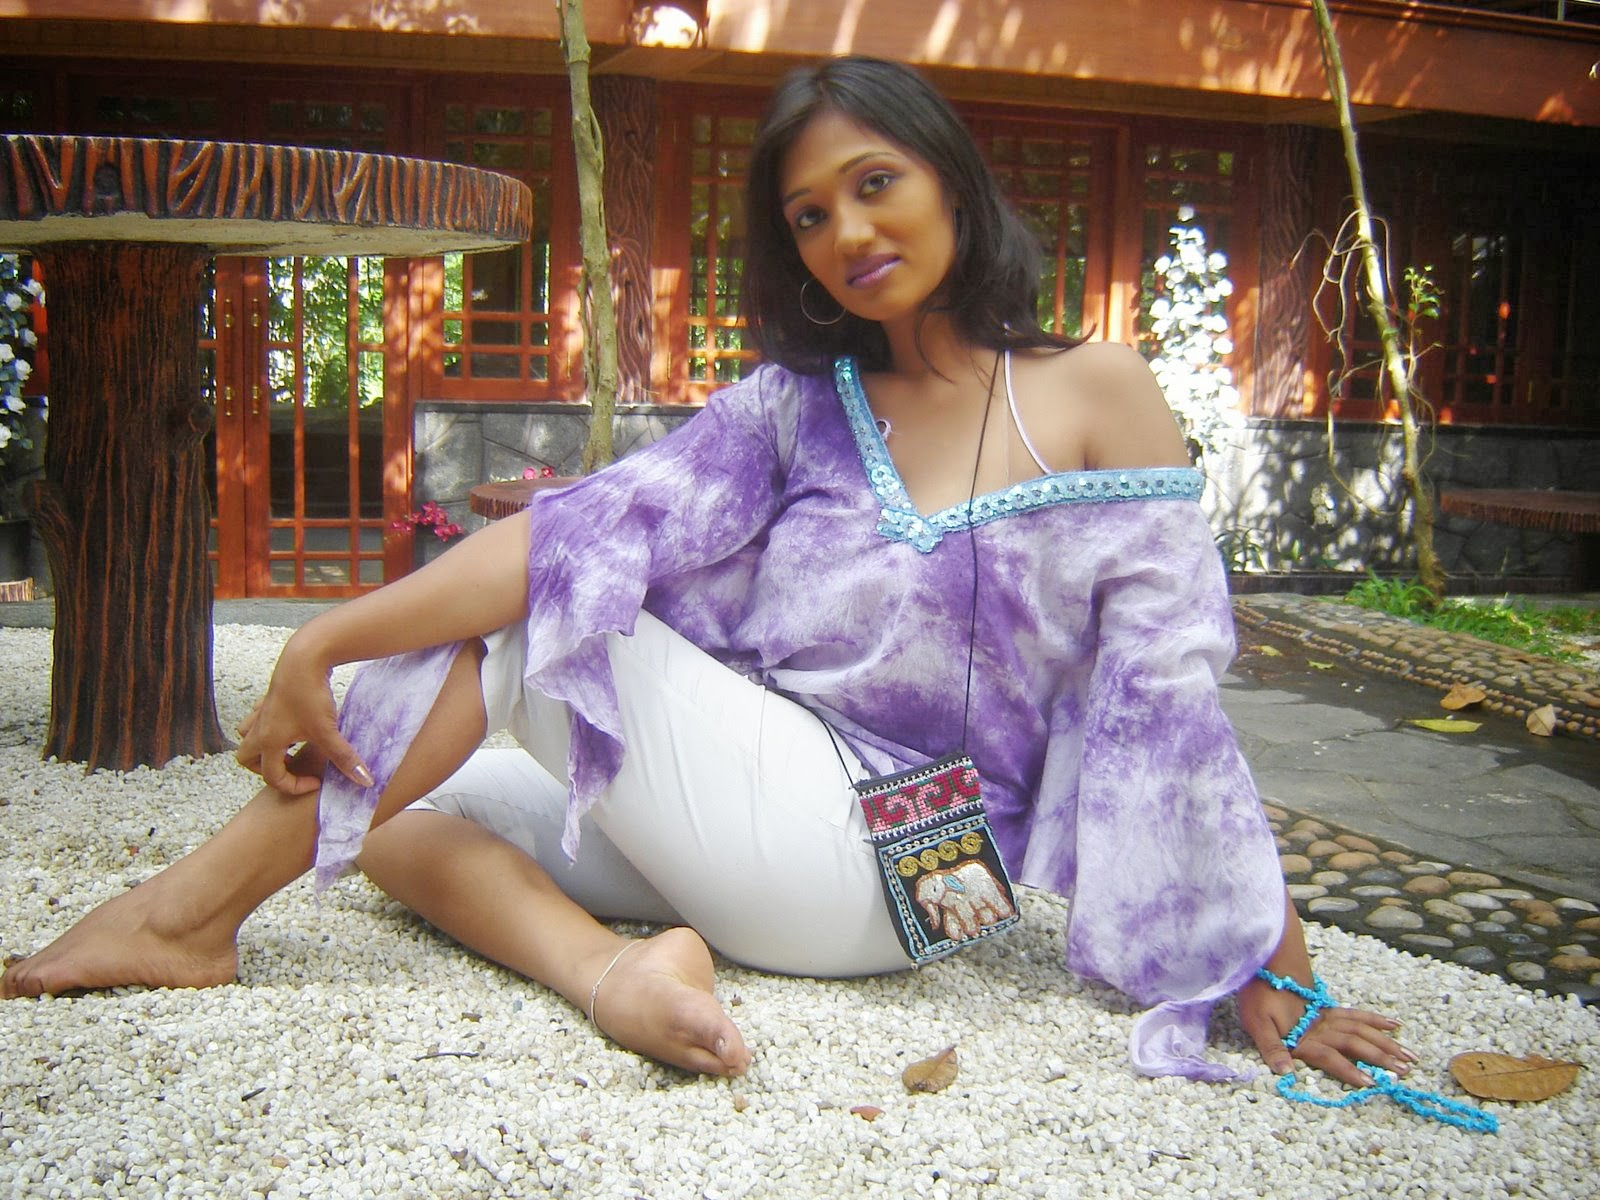 Sri lanka hot girl give me a hot blow job